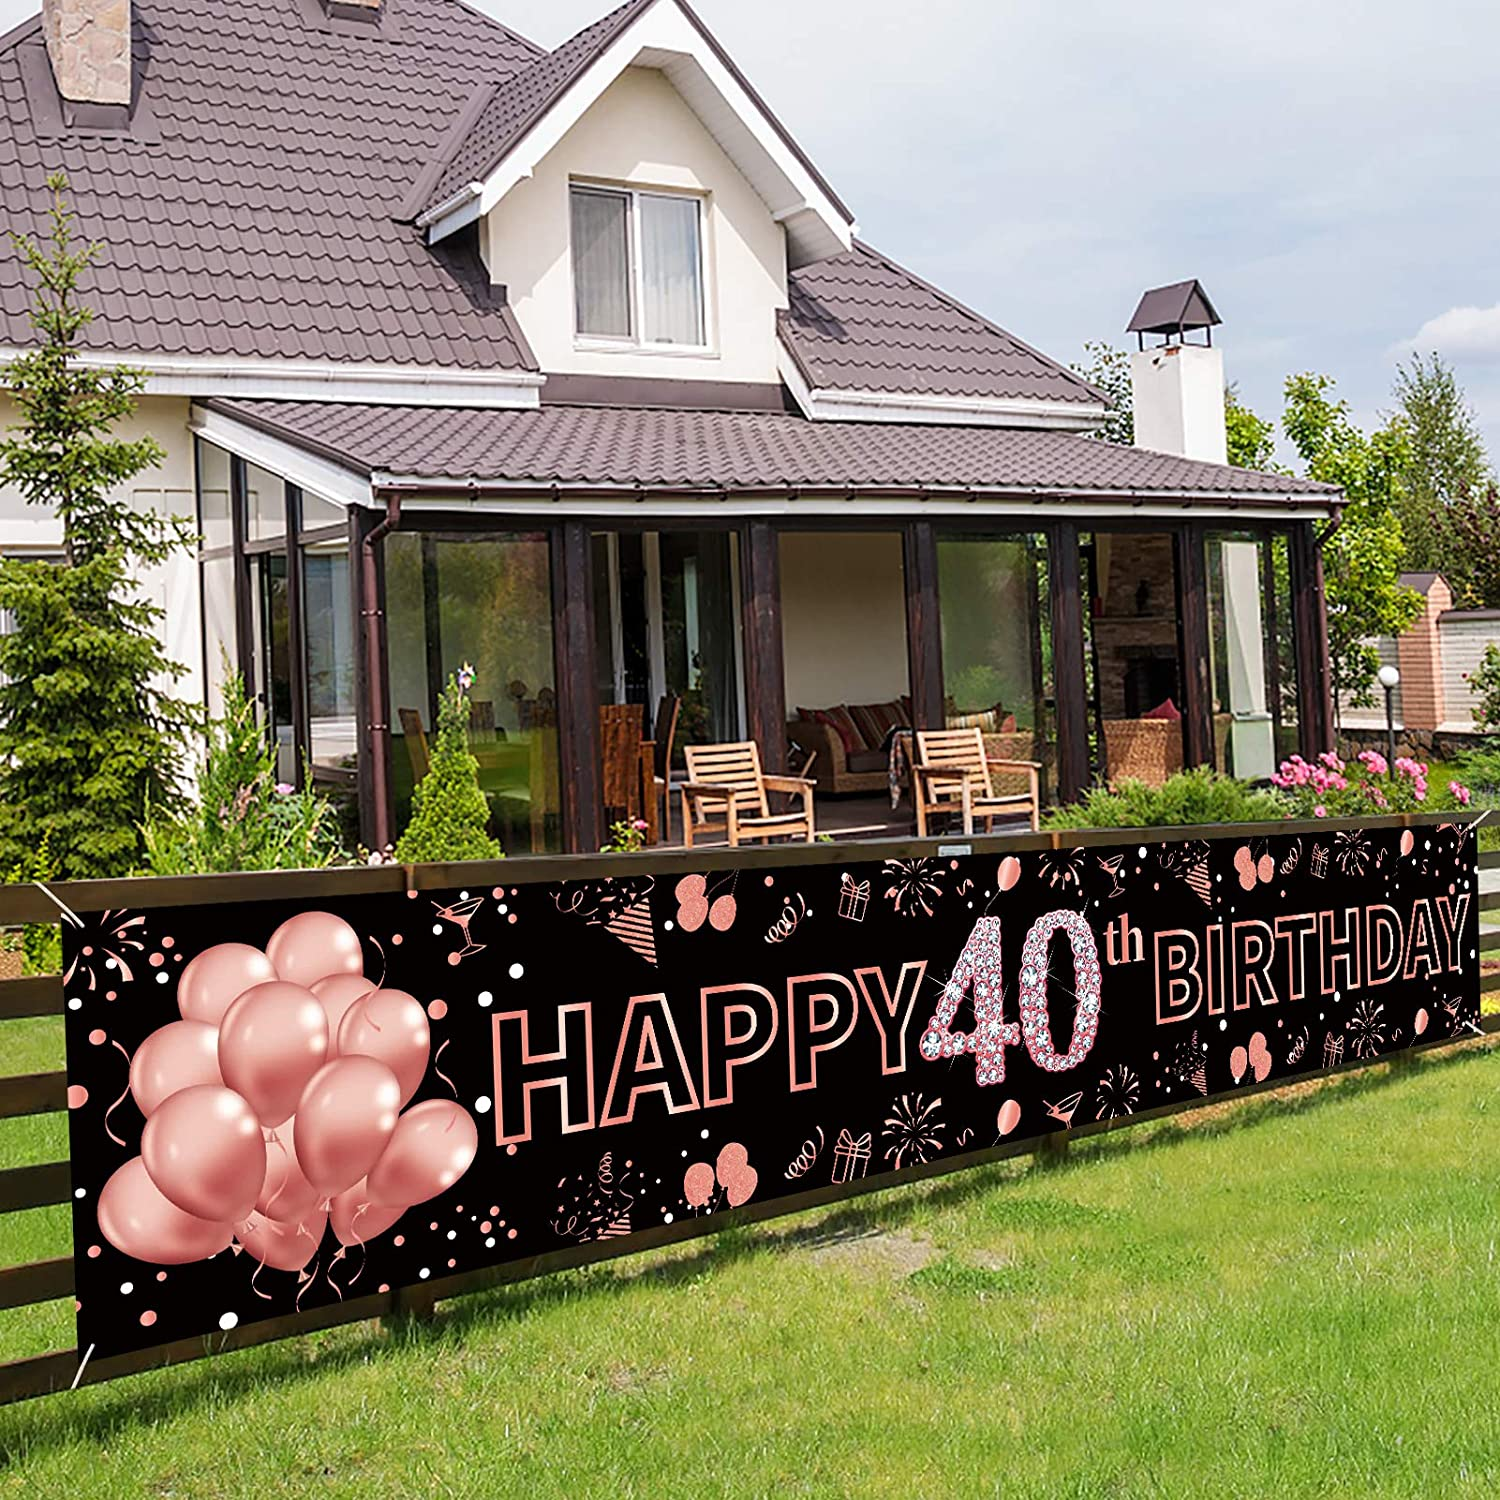 Pimvimcim 40th Birthday Banner Decorations for Women, Rose Gold Happy 40 Birthday Sign Supplies, Large 40 Years Old Sign Decor, Forty Birthday Photo Booth Backdrop(9.8x1.6ft)